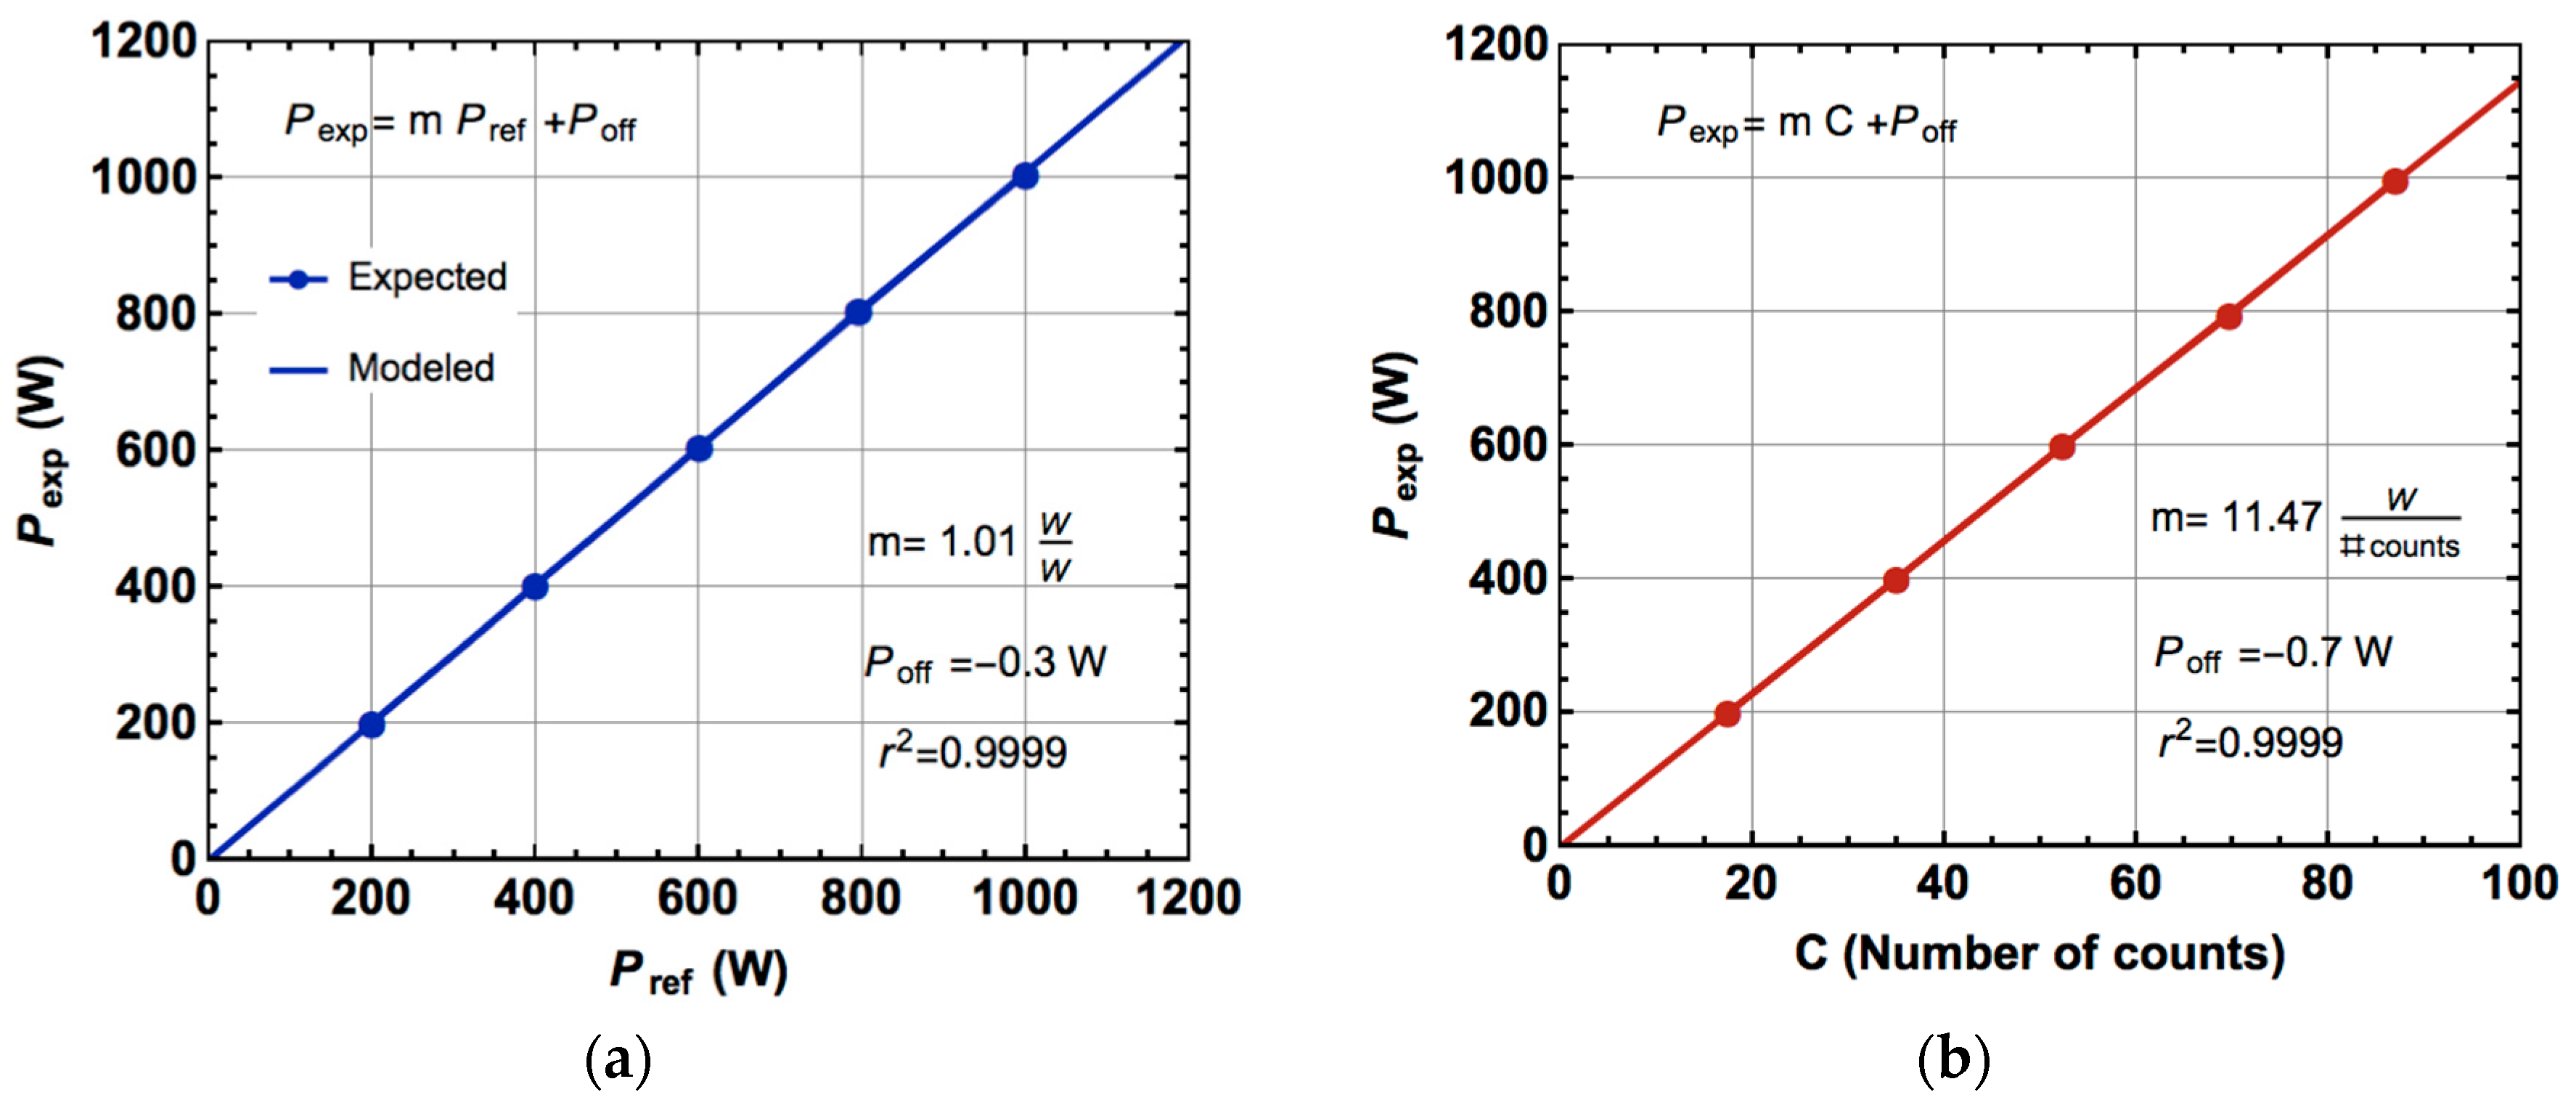 Materials Free Full Text Electronic Energy Meter Based On A Isolated Electric Bridge Measurement Amplifier Circuit Composed Of 10 01134 G010a